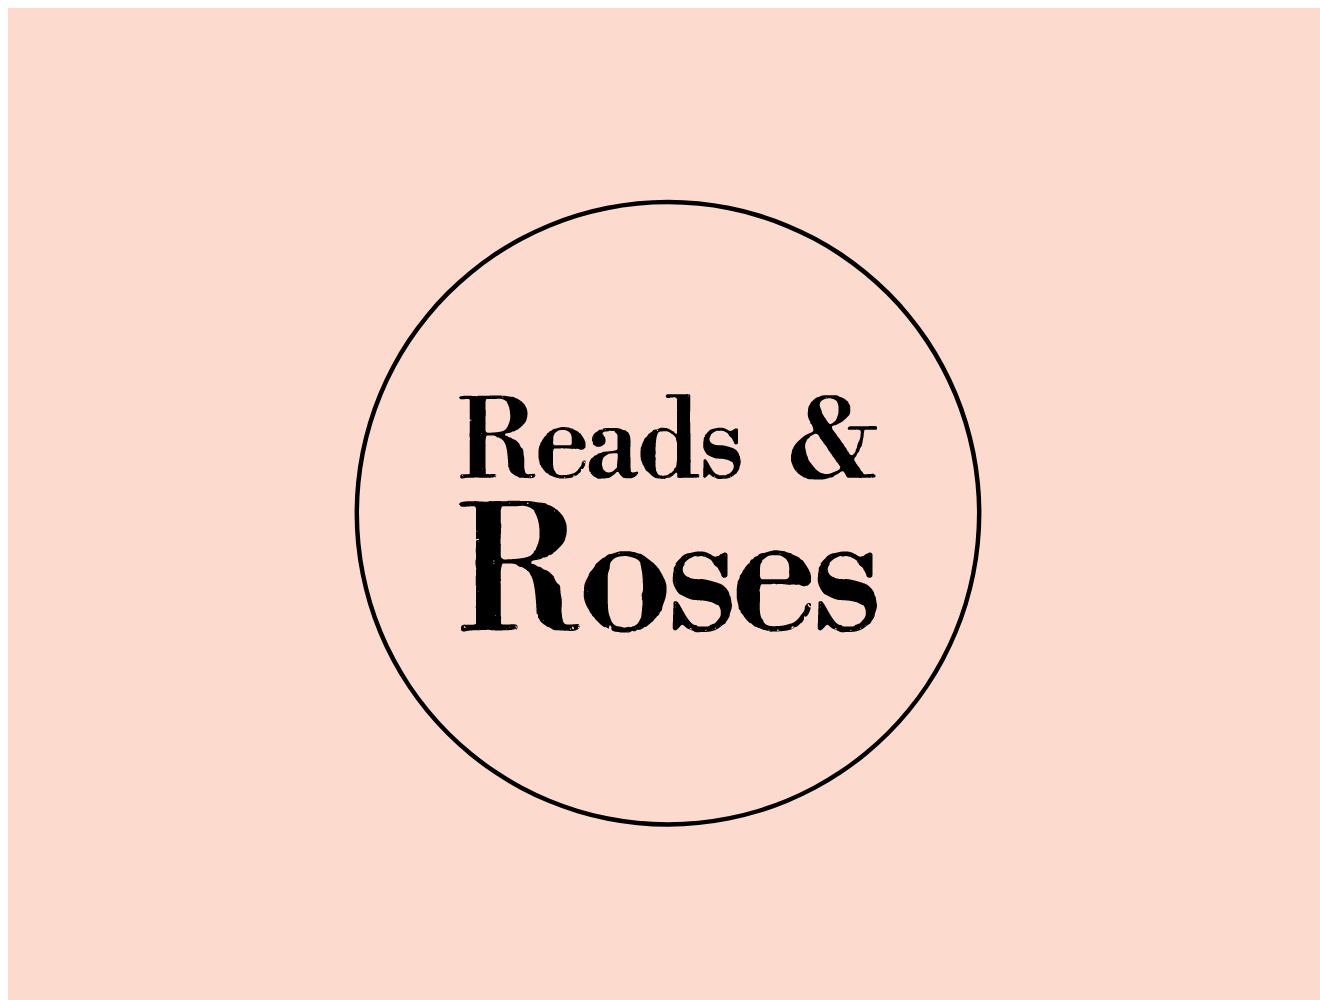 Reads & Roses